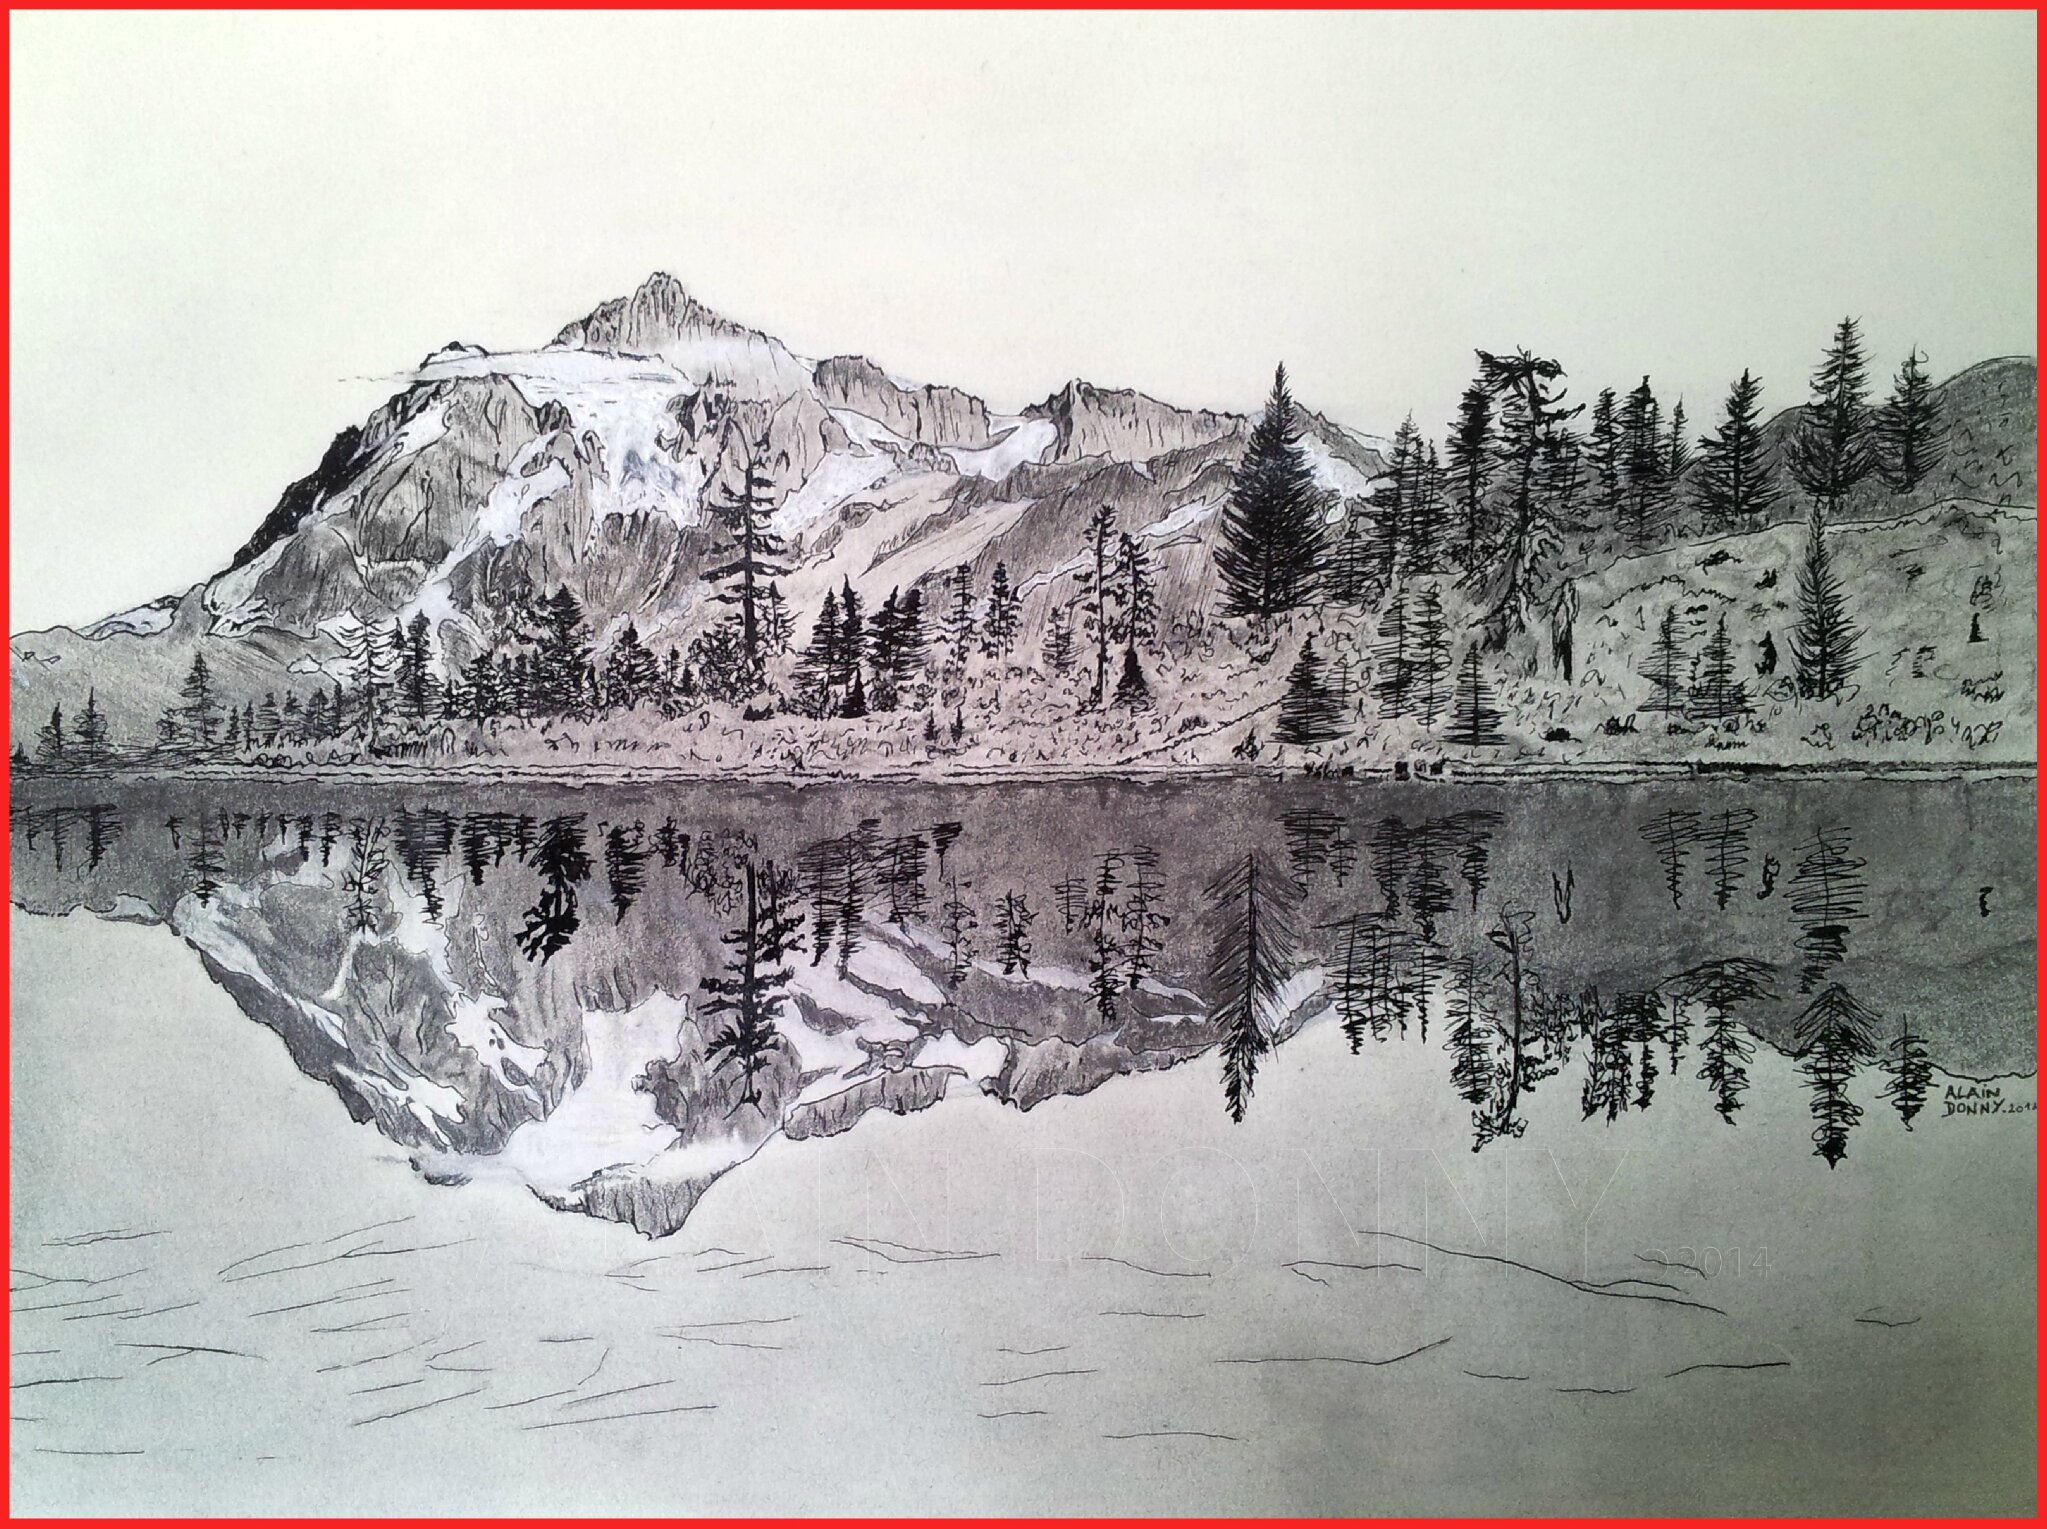 paysage montagne et lac 2014 mes p 39 tits dessins le blog d 39 alain. Black Bedroom Furniture Sets. Home Design Ideas